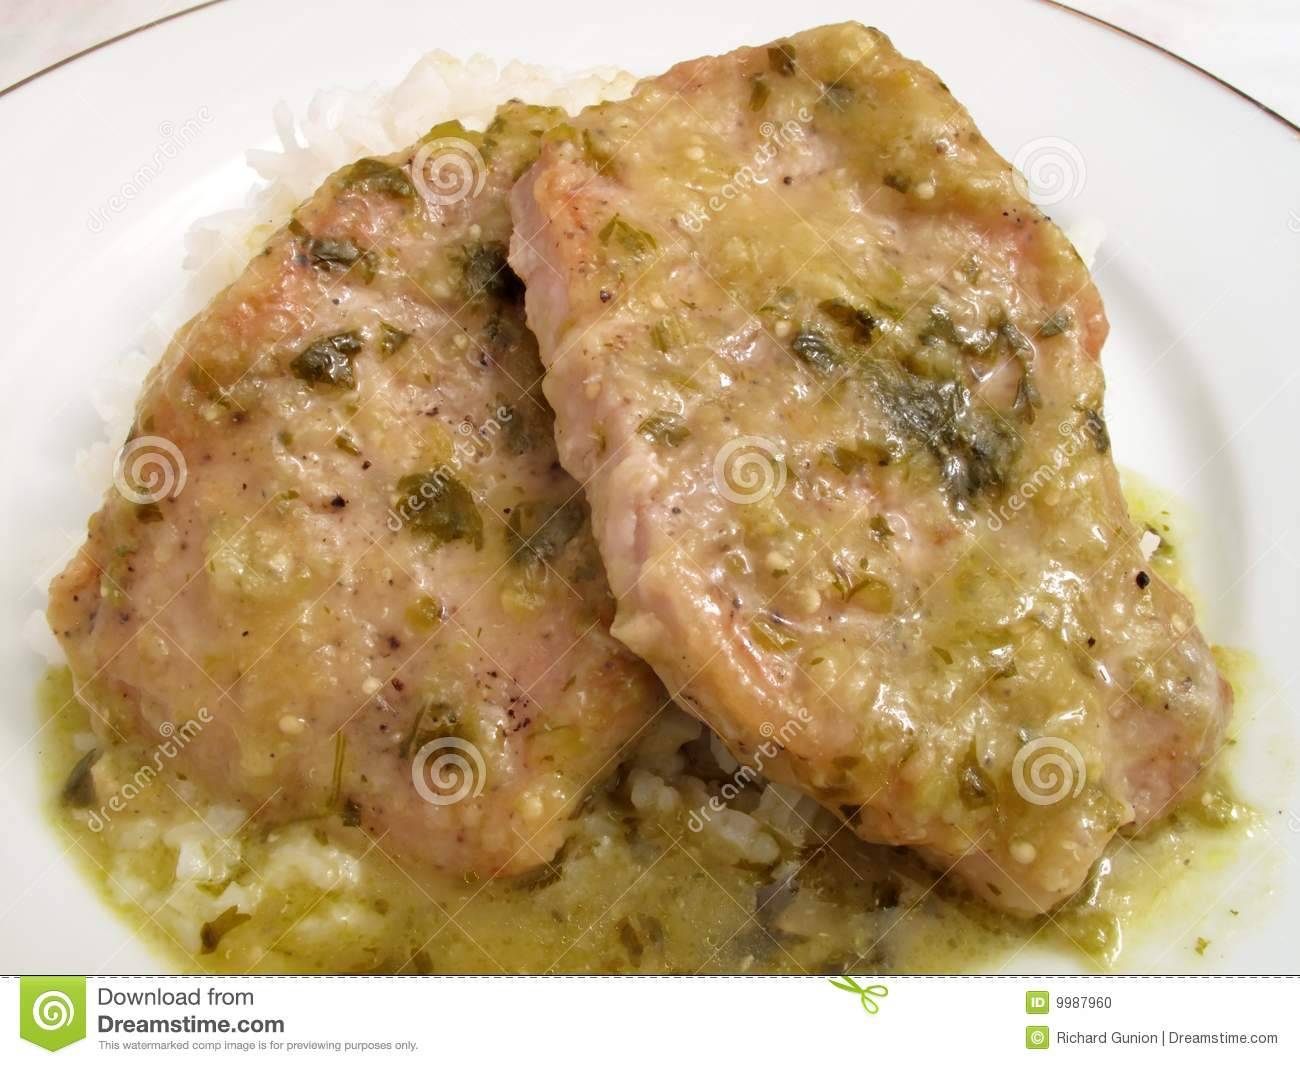 ... pork chops cooked in a spicy tomatillo sauce served with white rice